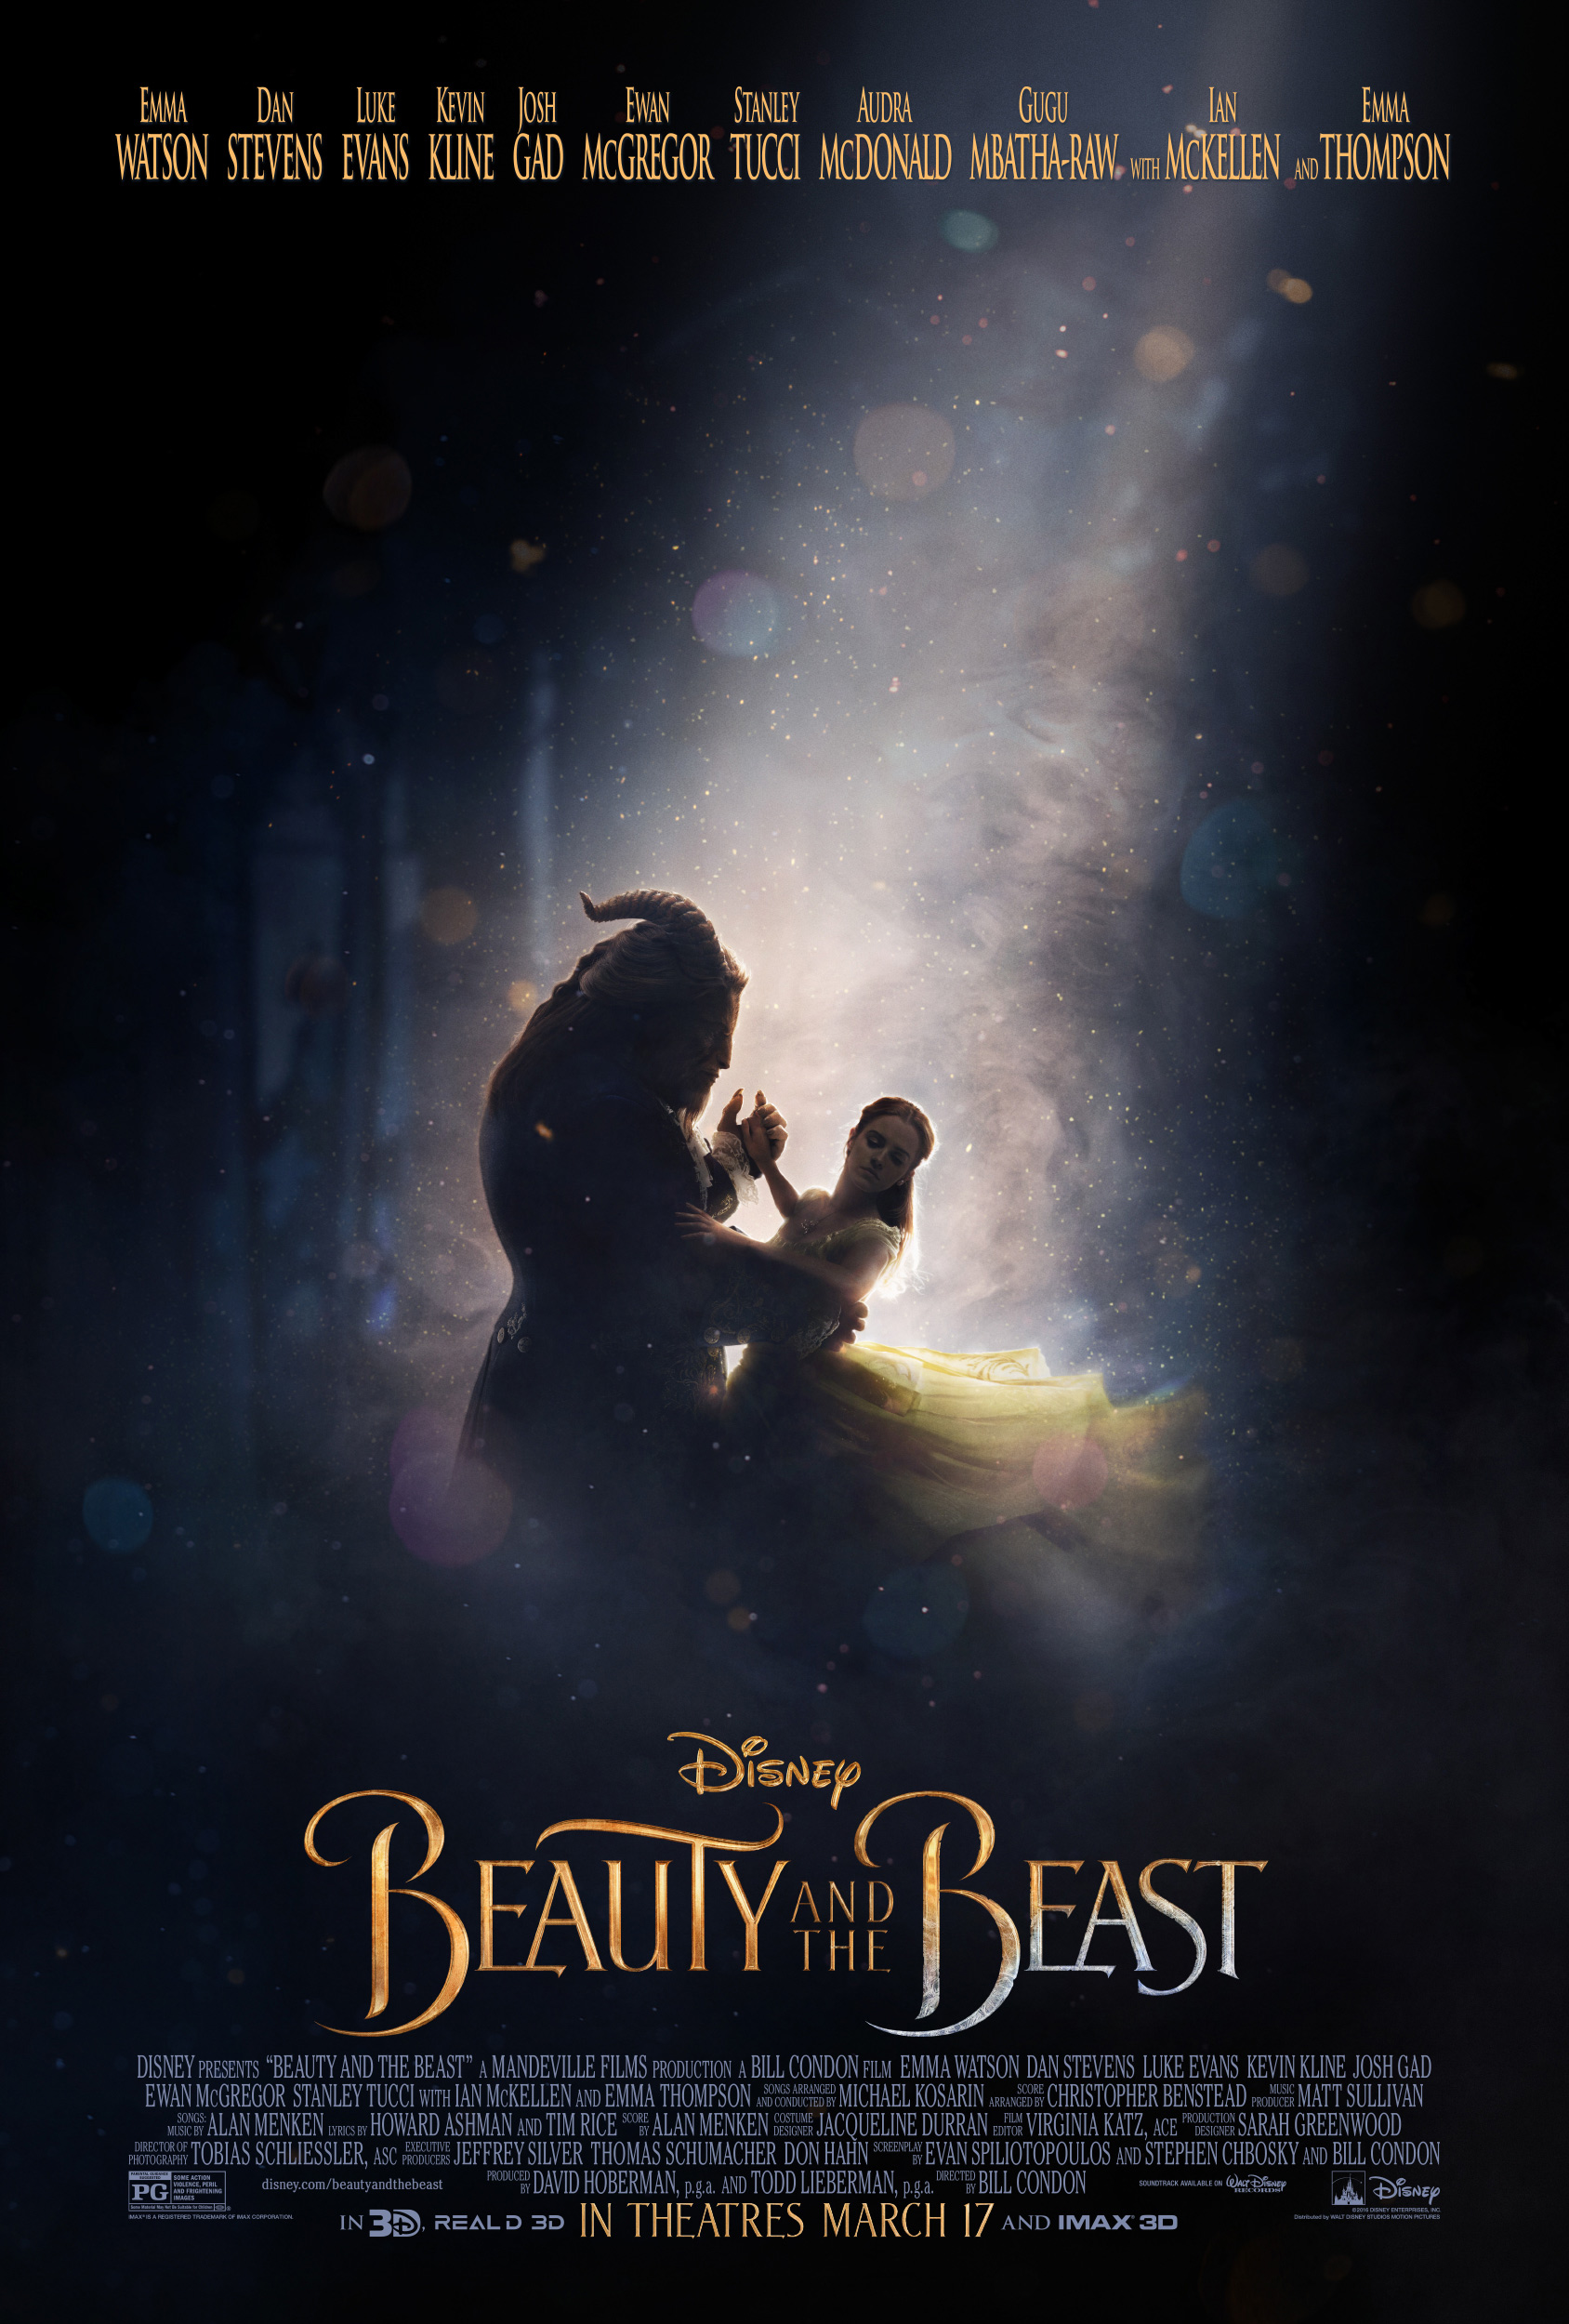 beauty-and-the-beast-teaser2_1-sheet_v4_lg